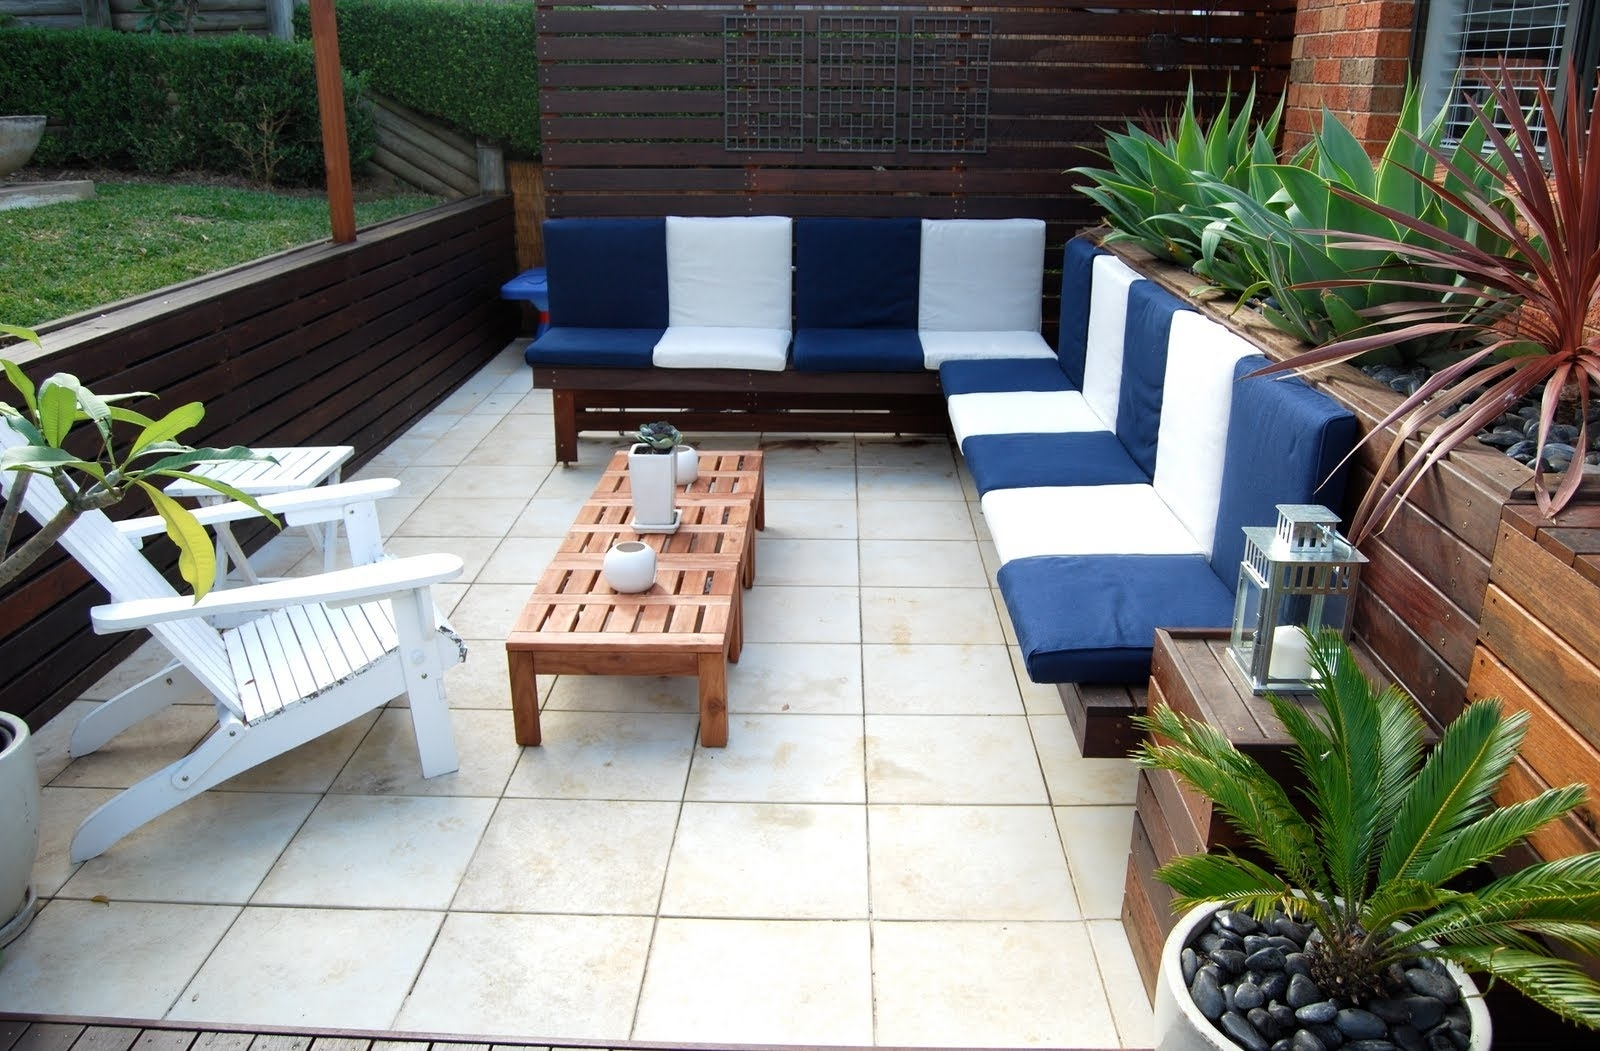 Ikea Patio Conversation Sets Intended For Popular Garden Furniture Ikea~ikea Garden Furniture Australia – Youtube (View 15 of 20)